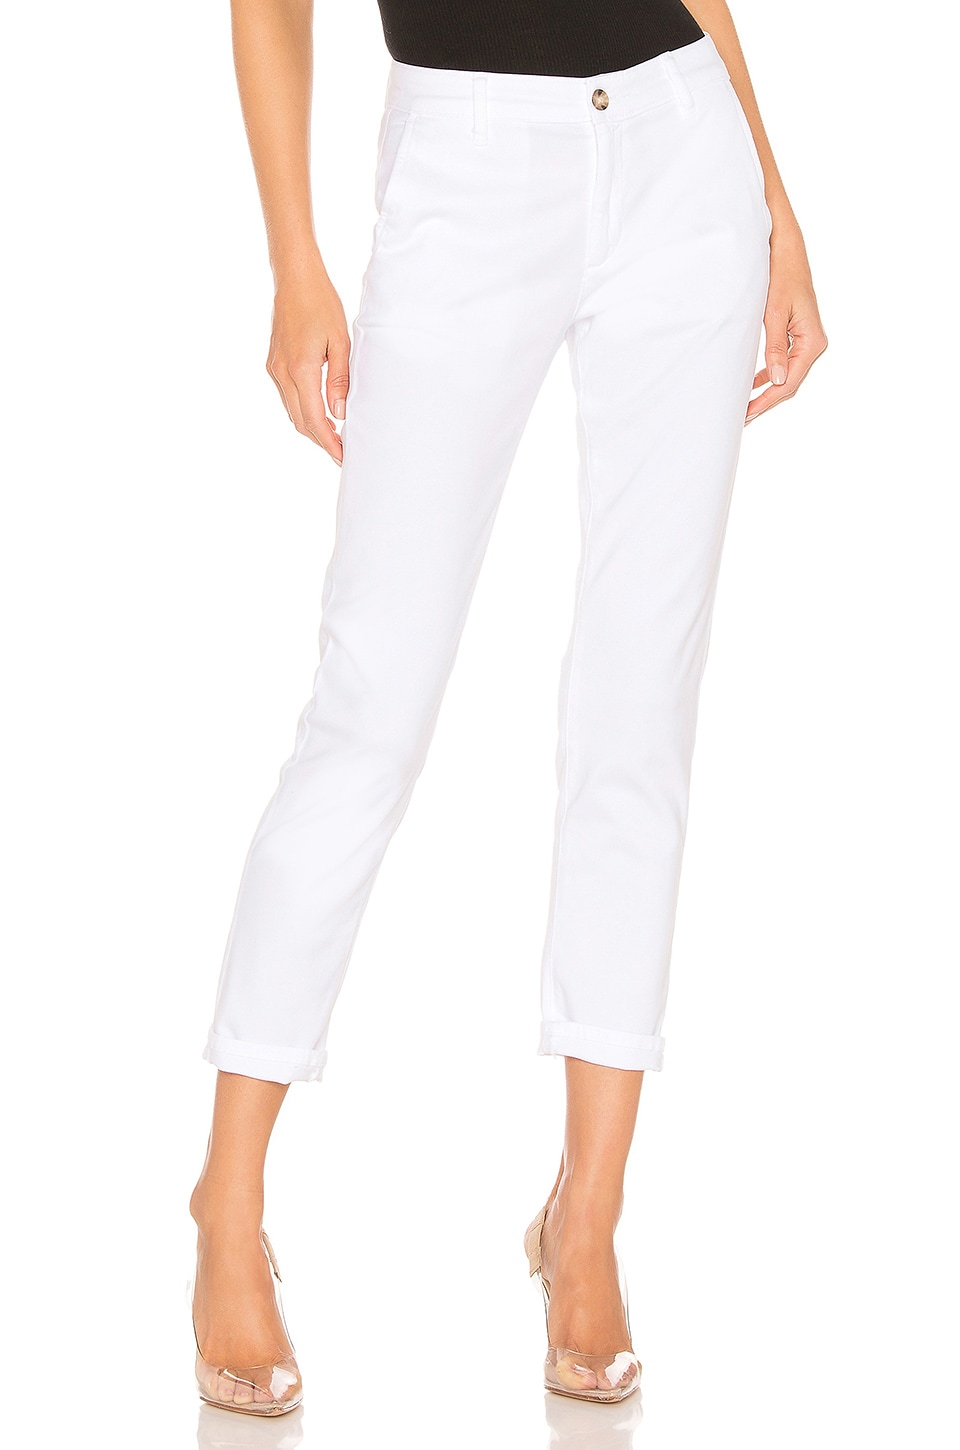 AG Adriano Goldschmied Caden Chino in White